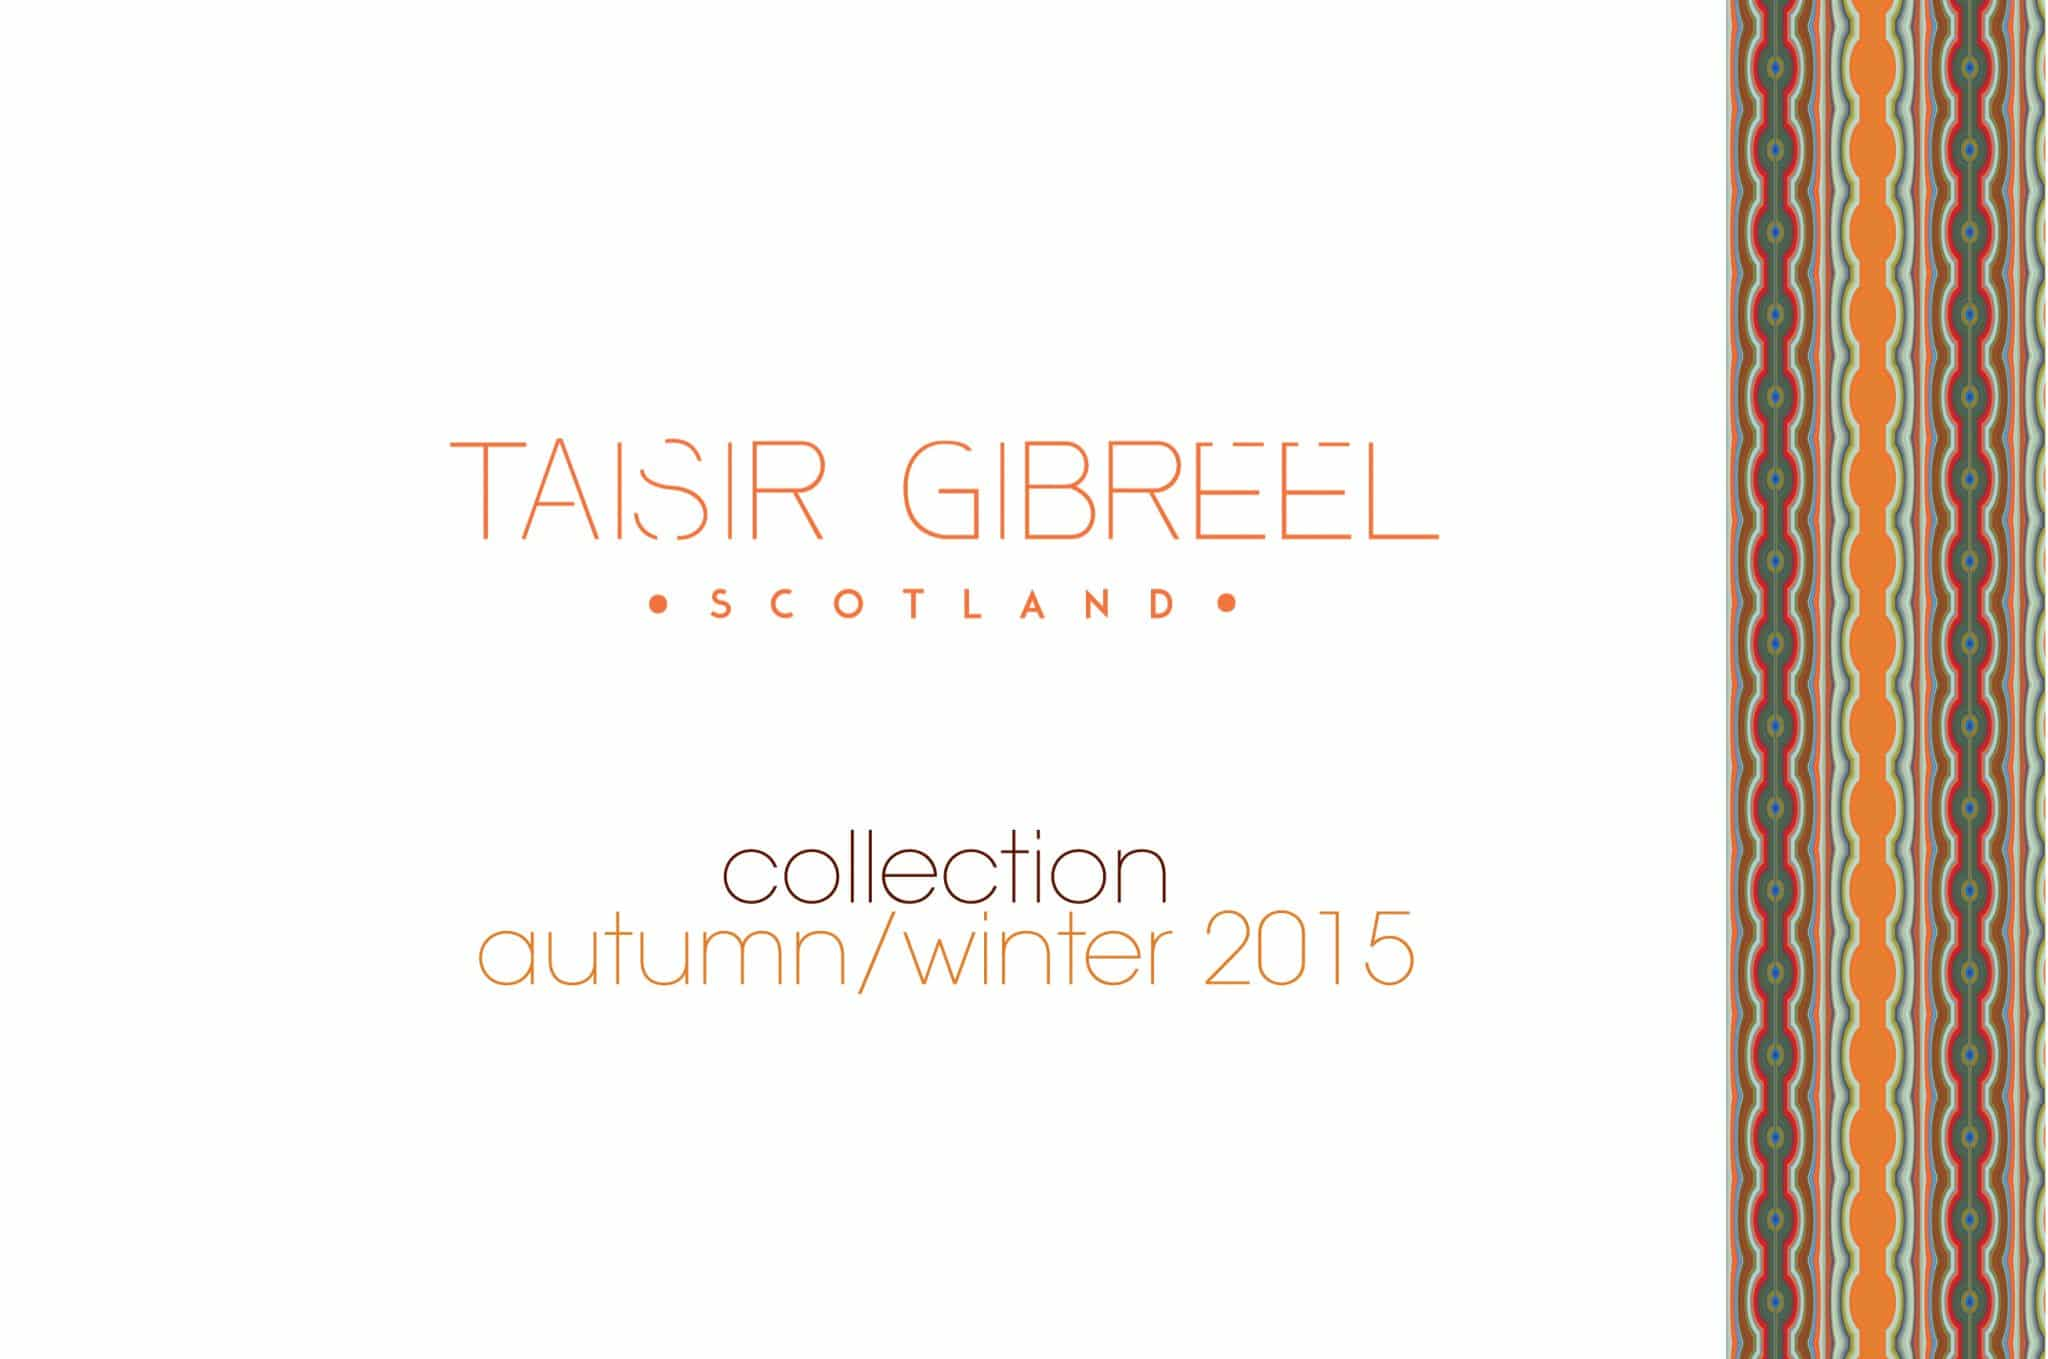 TAISIR GIBREEL DESIGNER LUXURY SILK SCARF MADE IN THE UK CATALOGUE